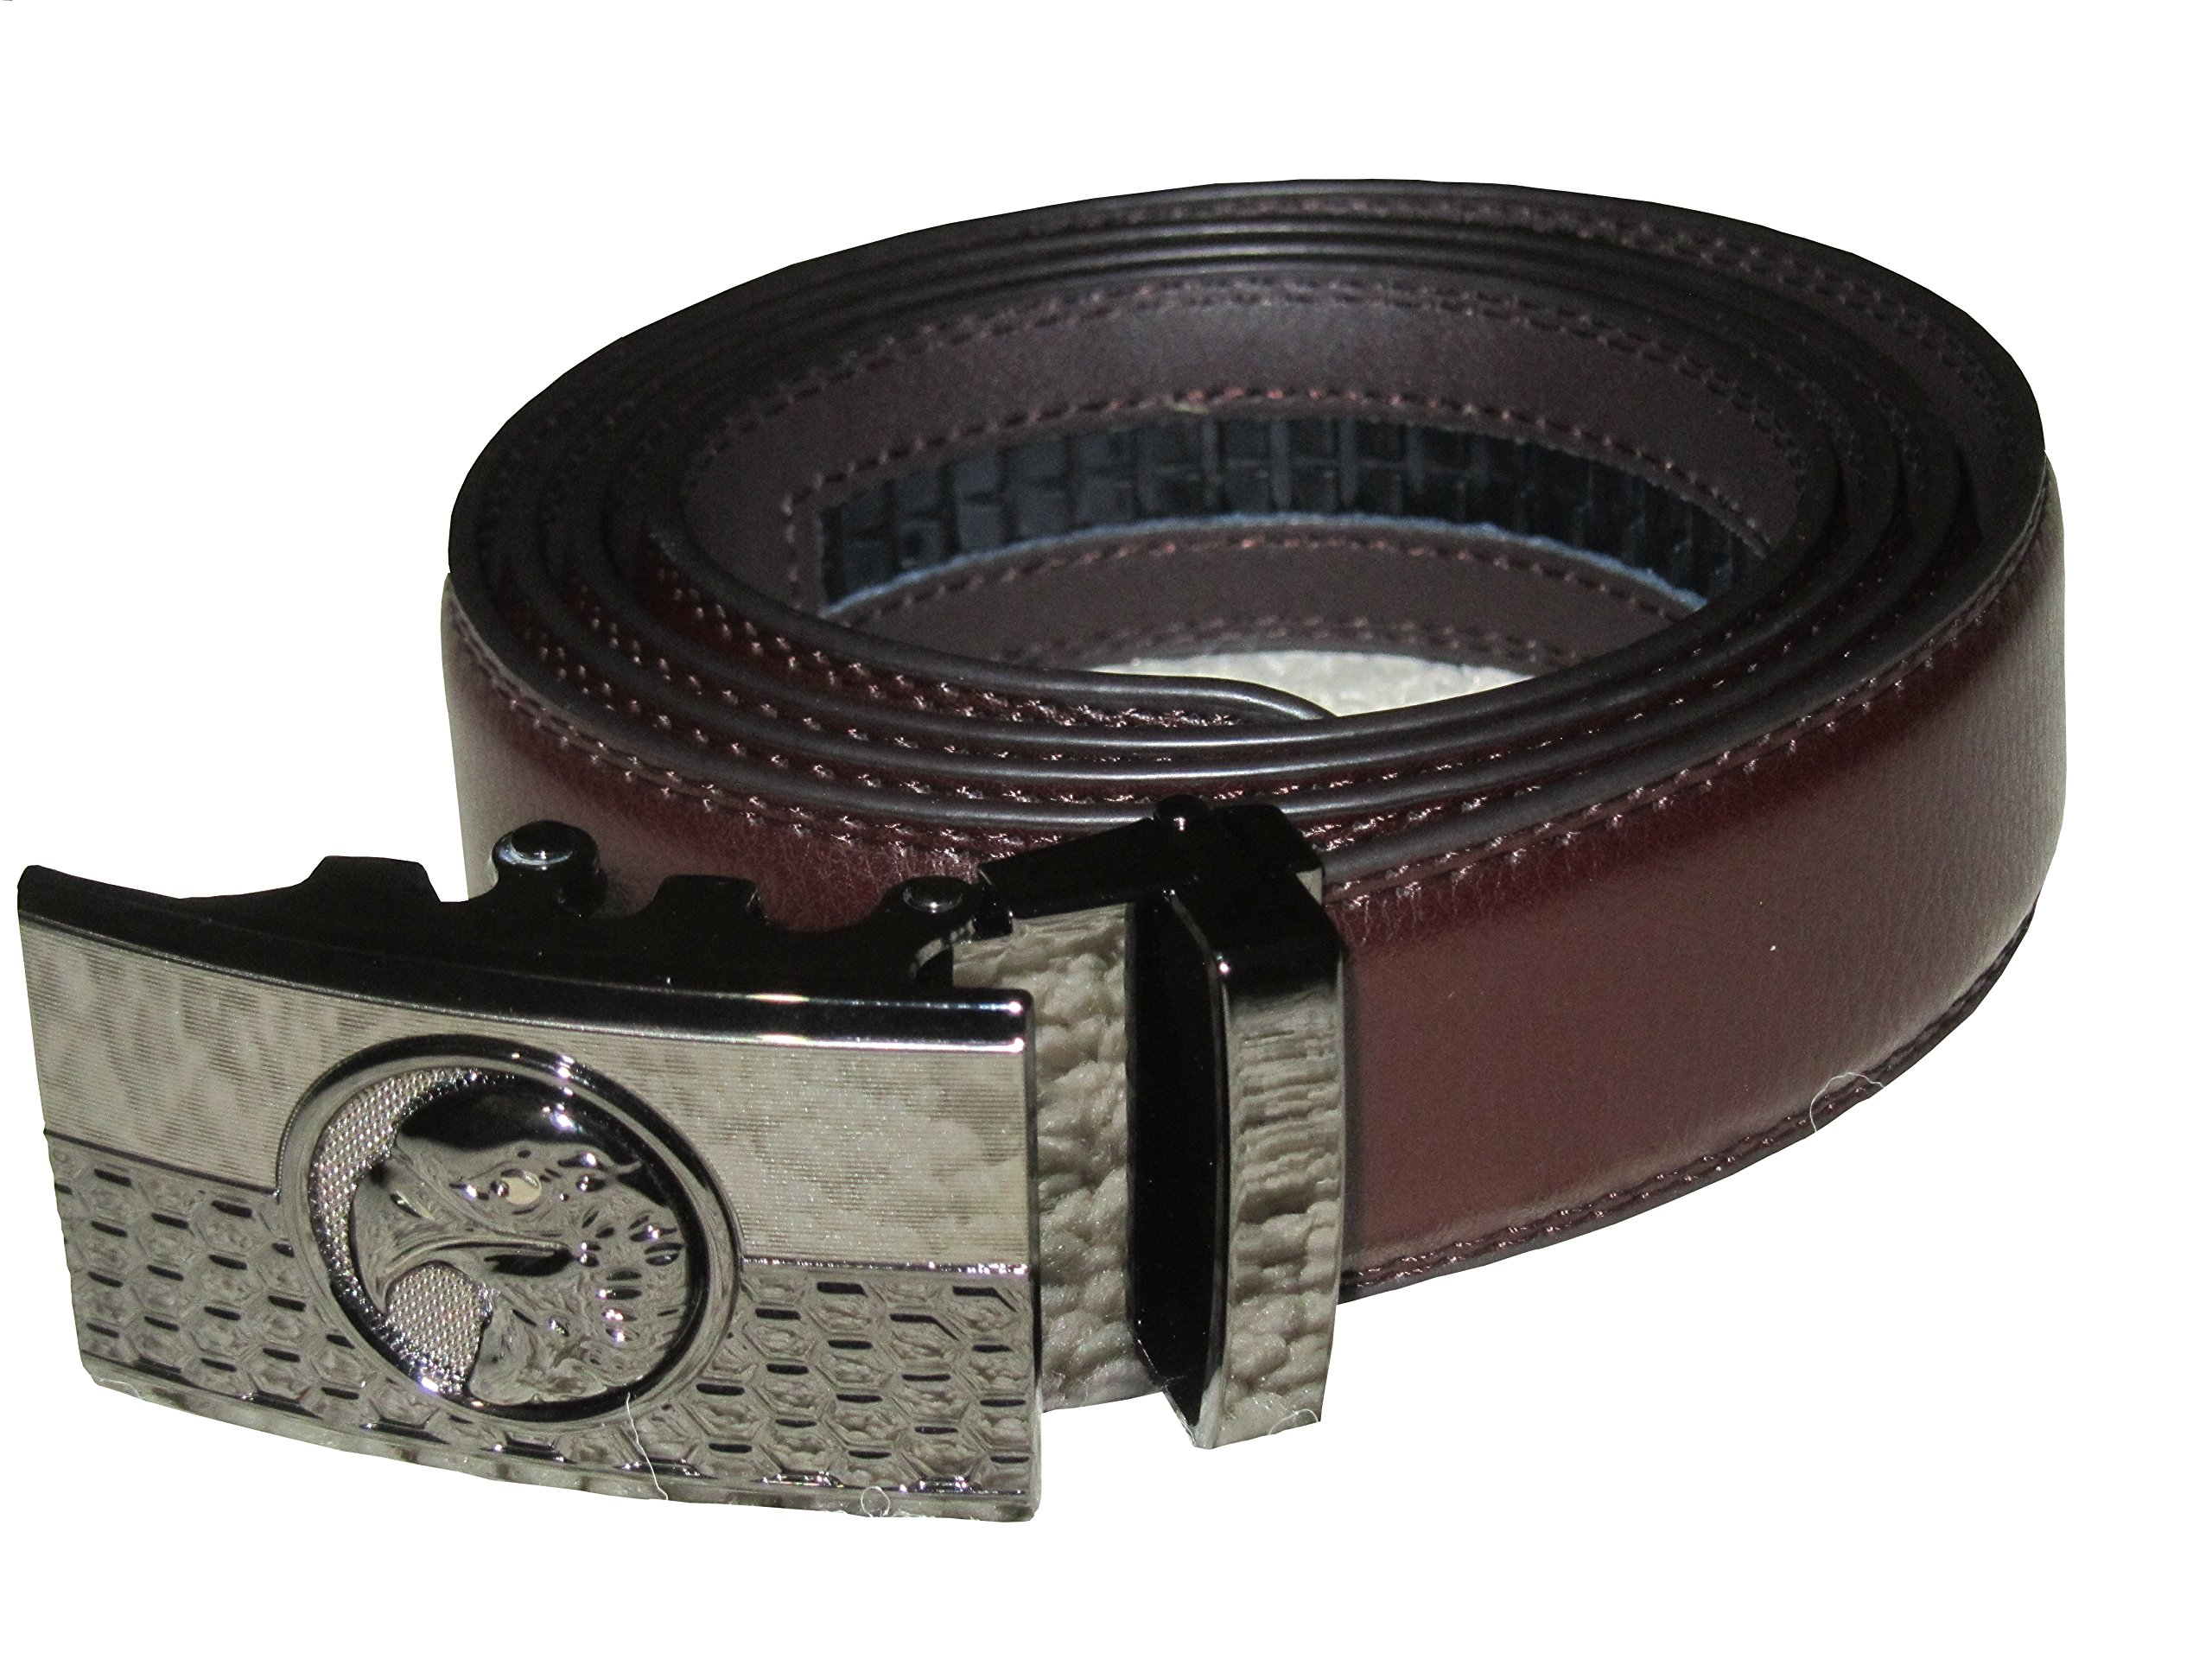 RiverView Enterprise American Eagle Leather Light Duty Dress Belt- for Concealed Carry Tactical Use (CCW) (Dark Brown)